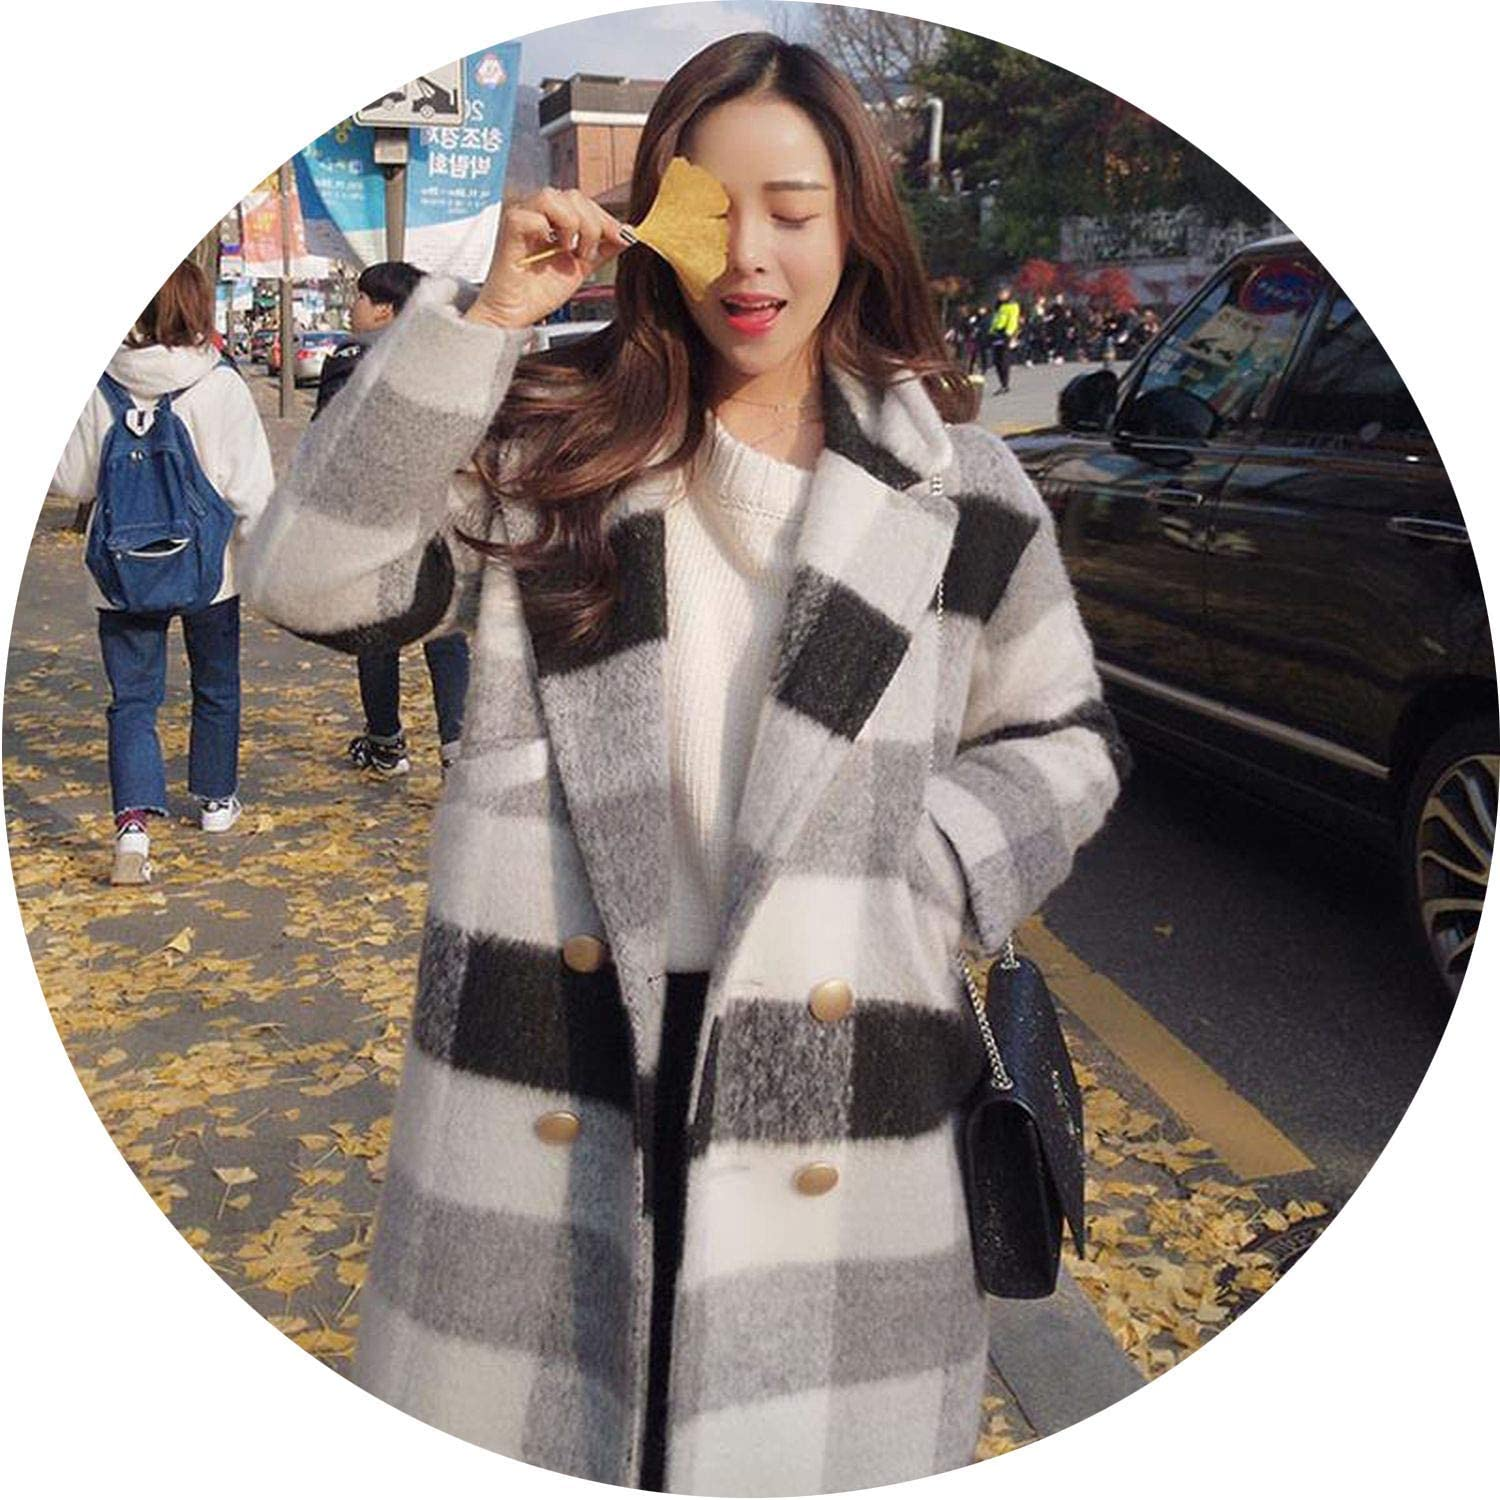 Be fearless Winter Cashmere Trench Jacket Women Casual Plaid Coat Warm Button Pocket Jackets